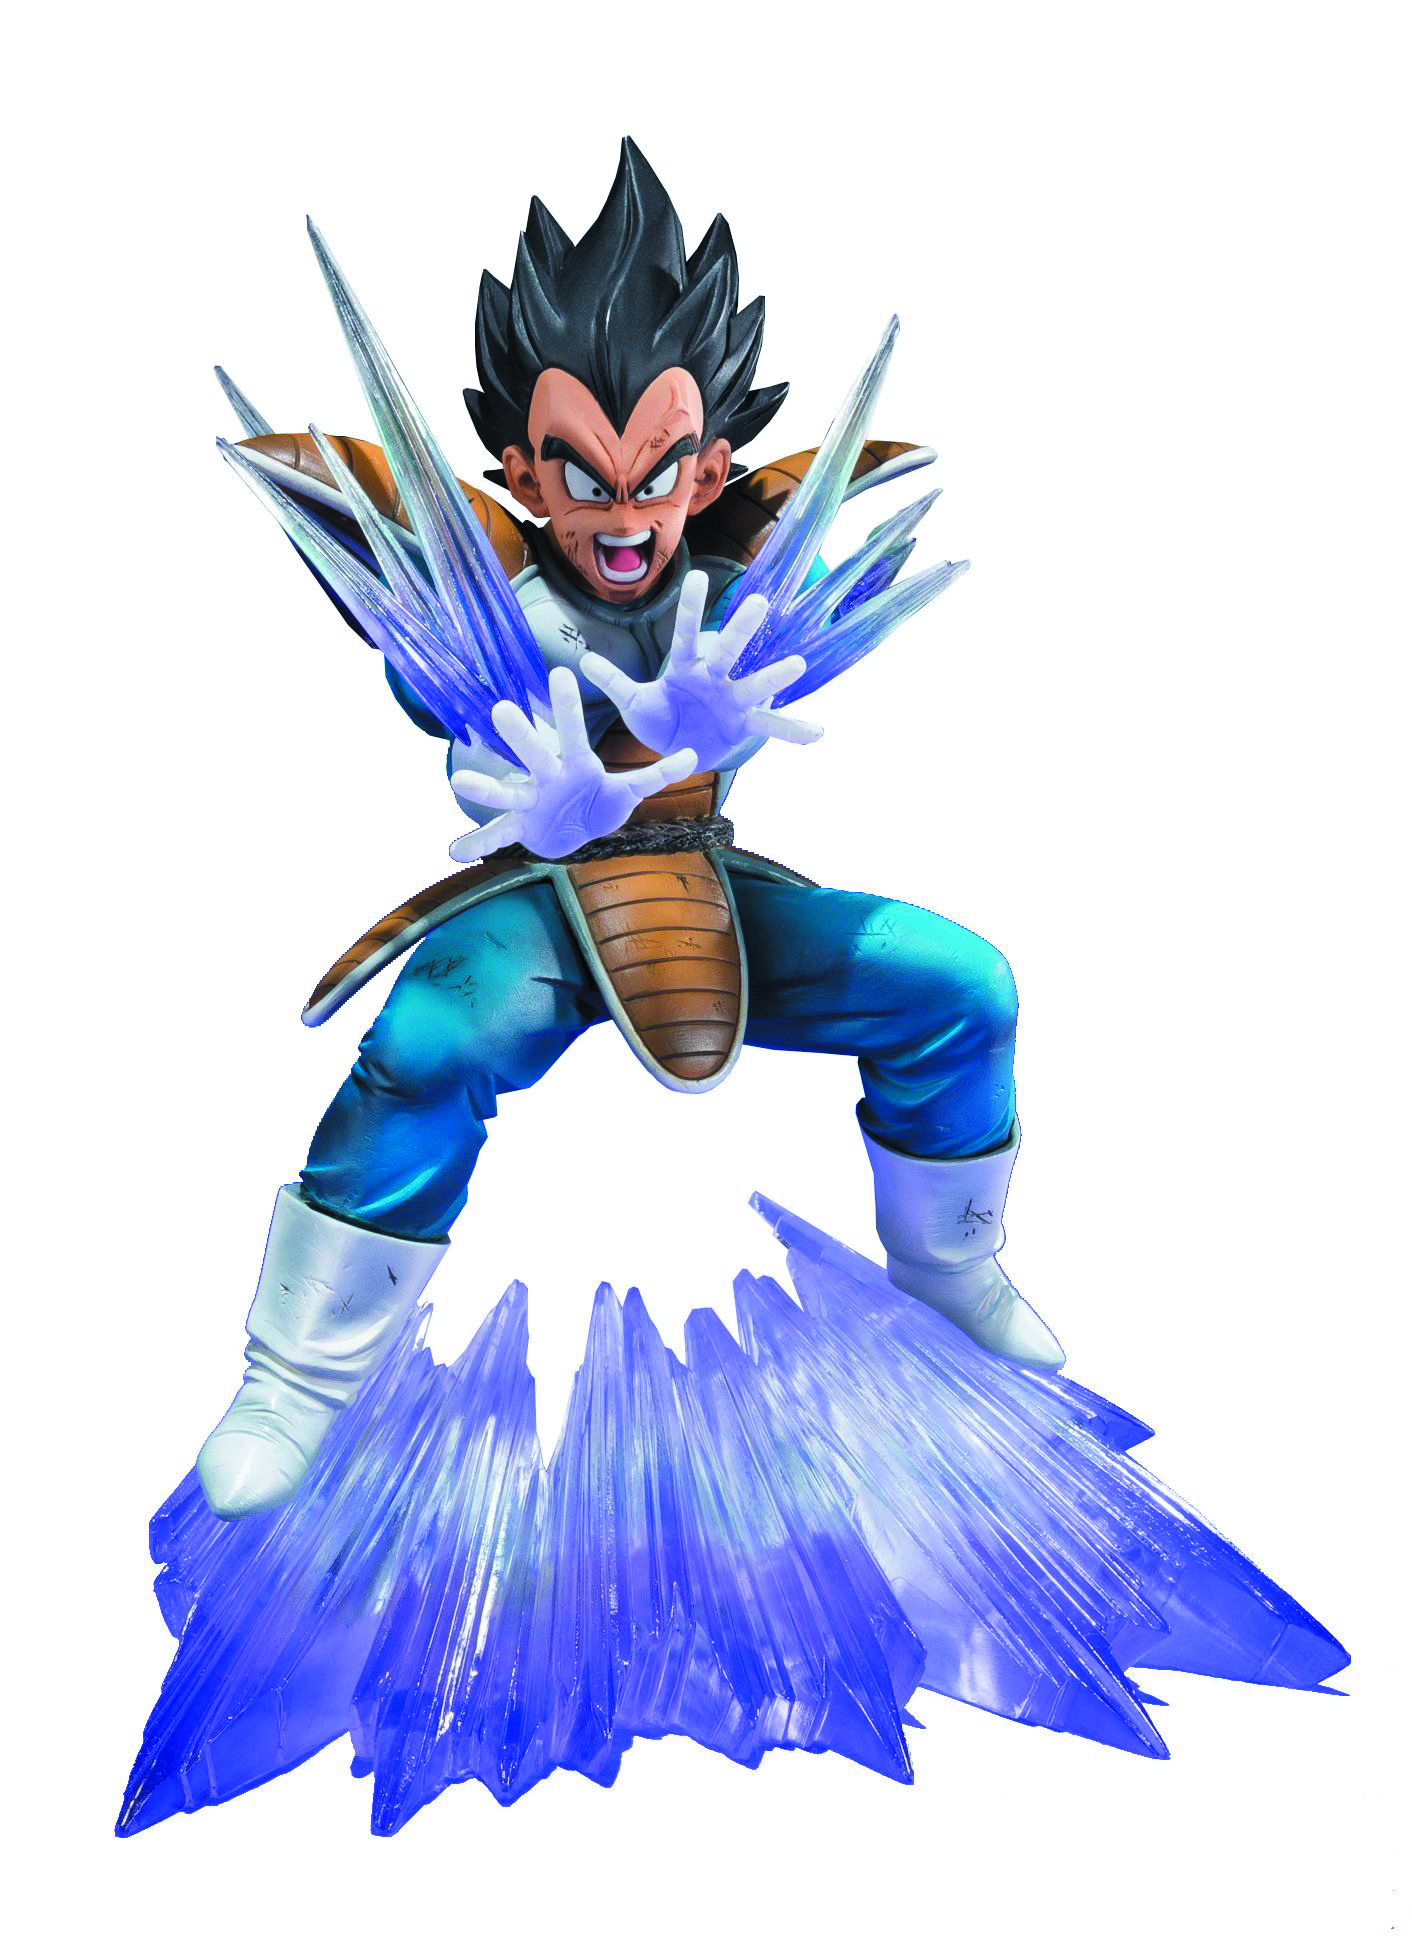 DBZ VEGETA GALICK GUN FIGUARTS ZERO FIG